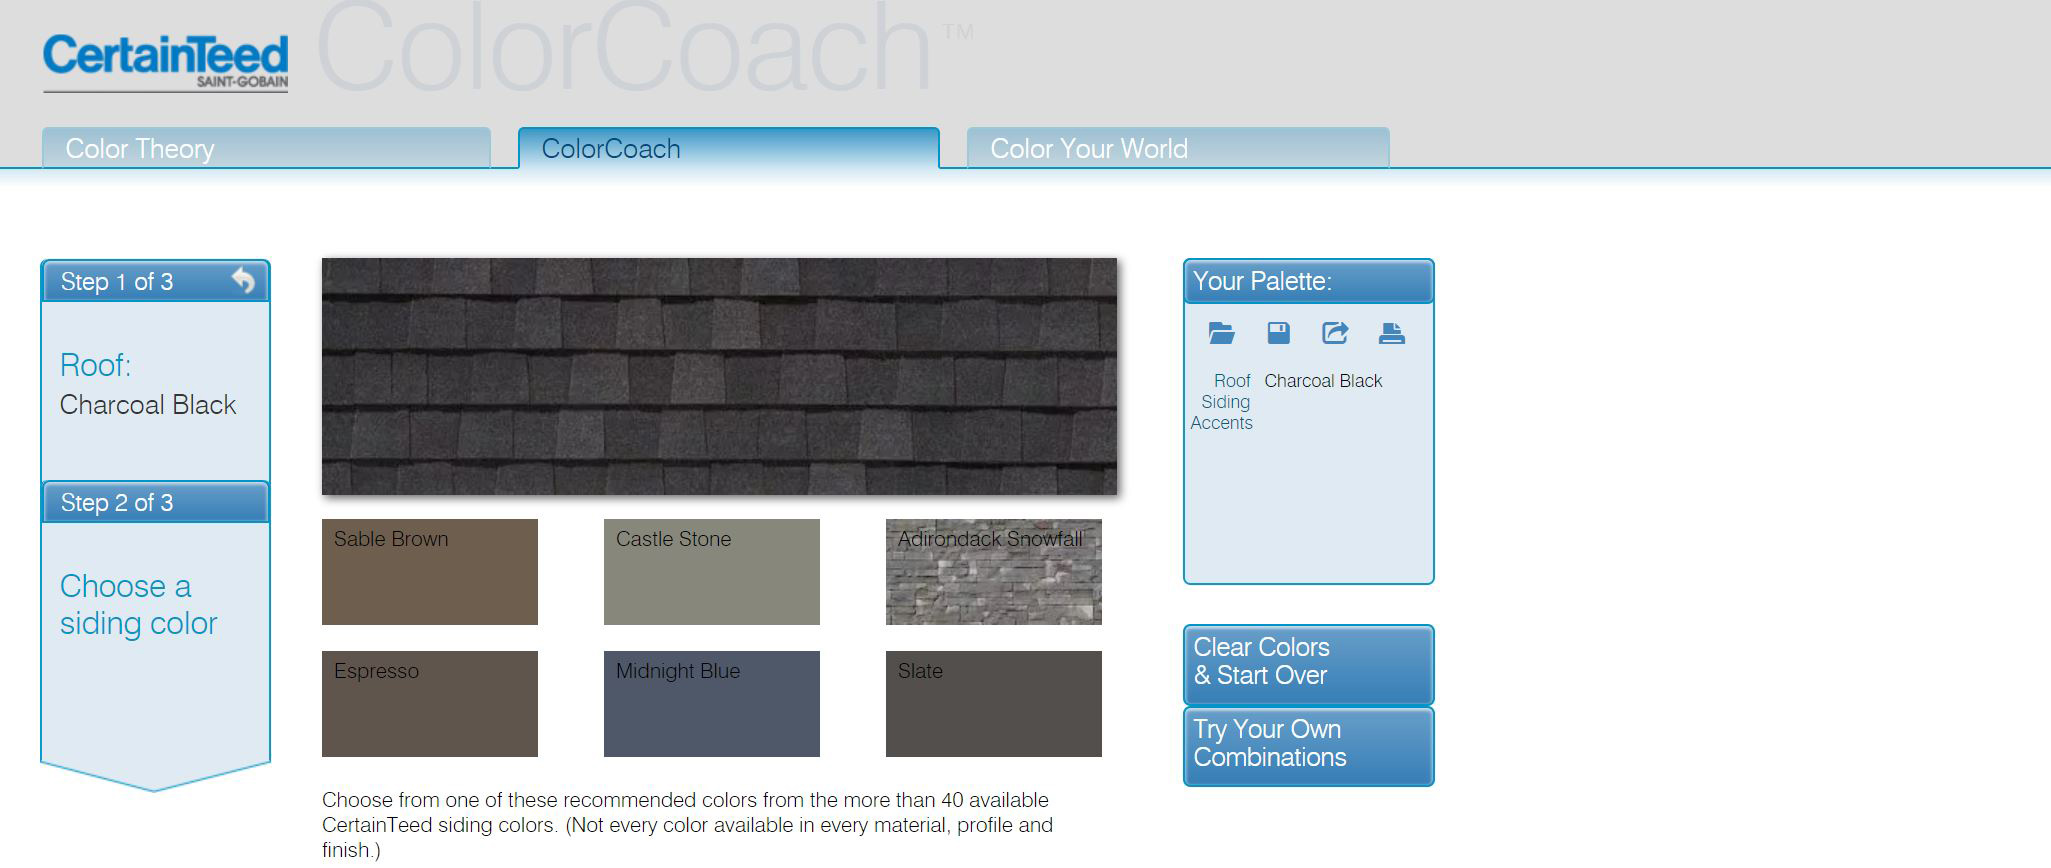 5 Contractor tools roofing siding trim CertainTeed ColorCoach